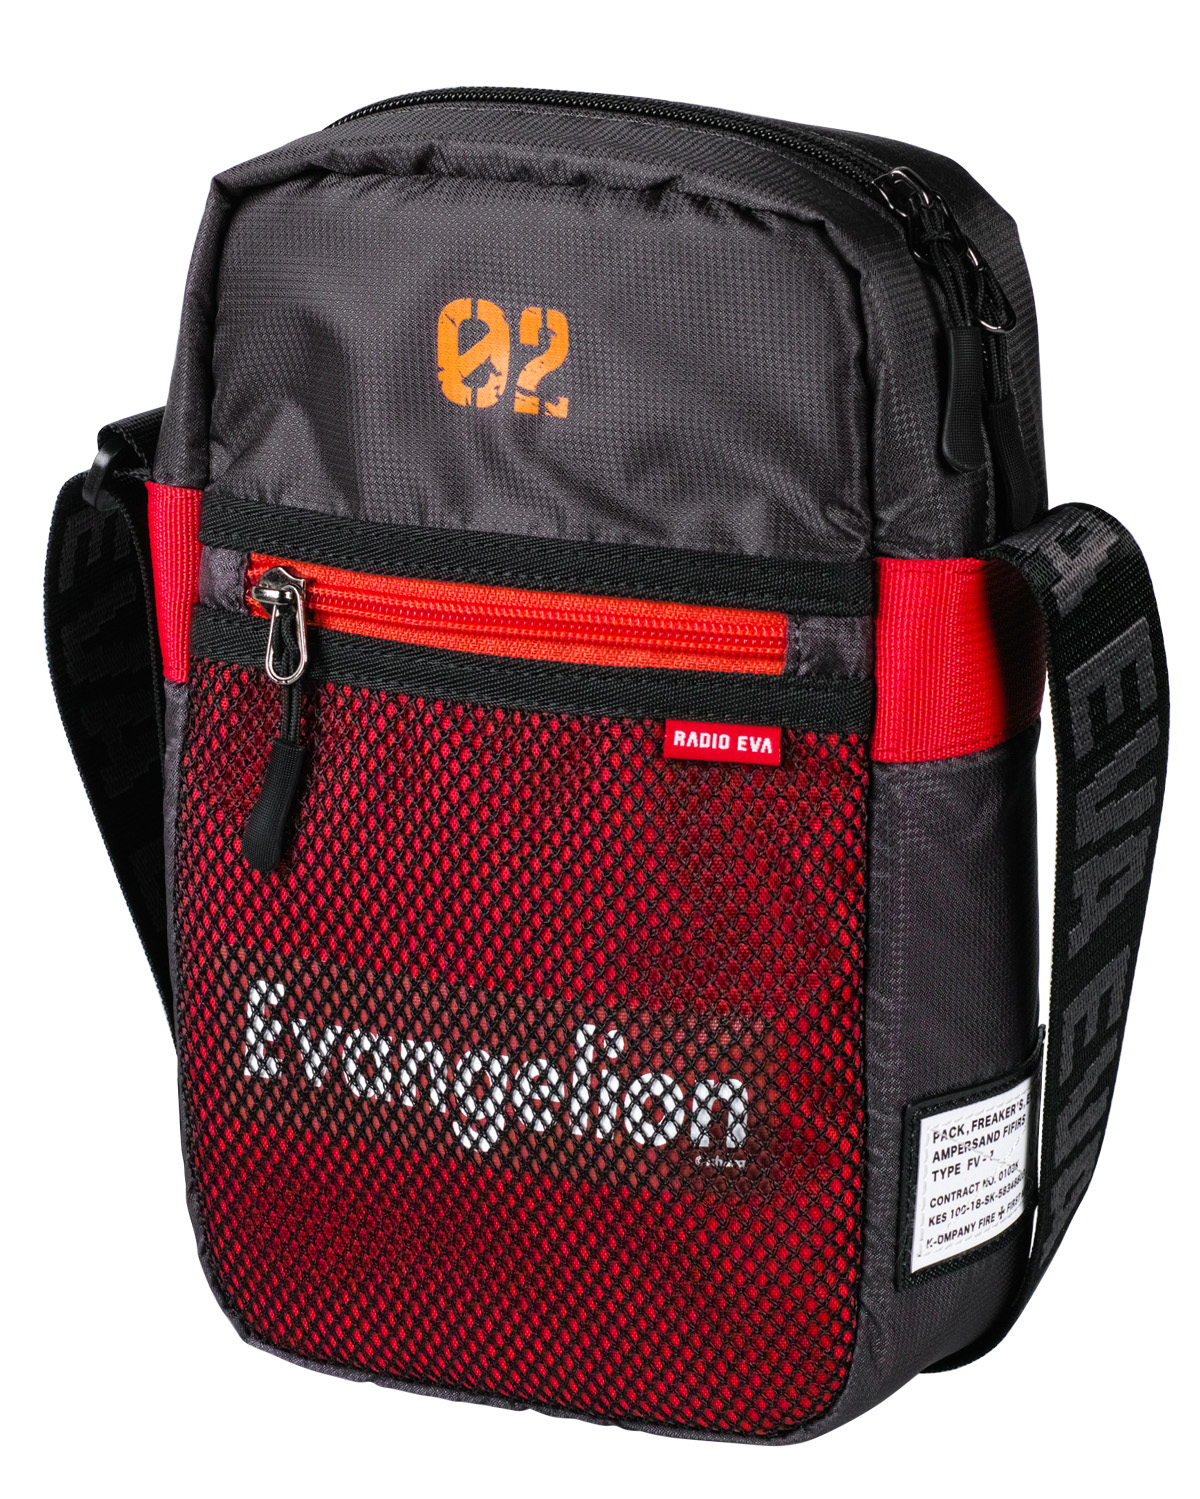 EVANGELION CORE SHOULDER BAG by FIRE FIRST (EVA-02 MODEL)